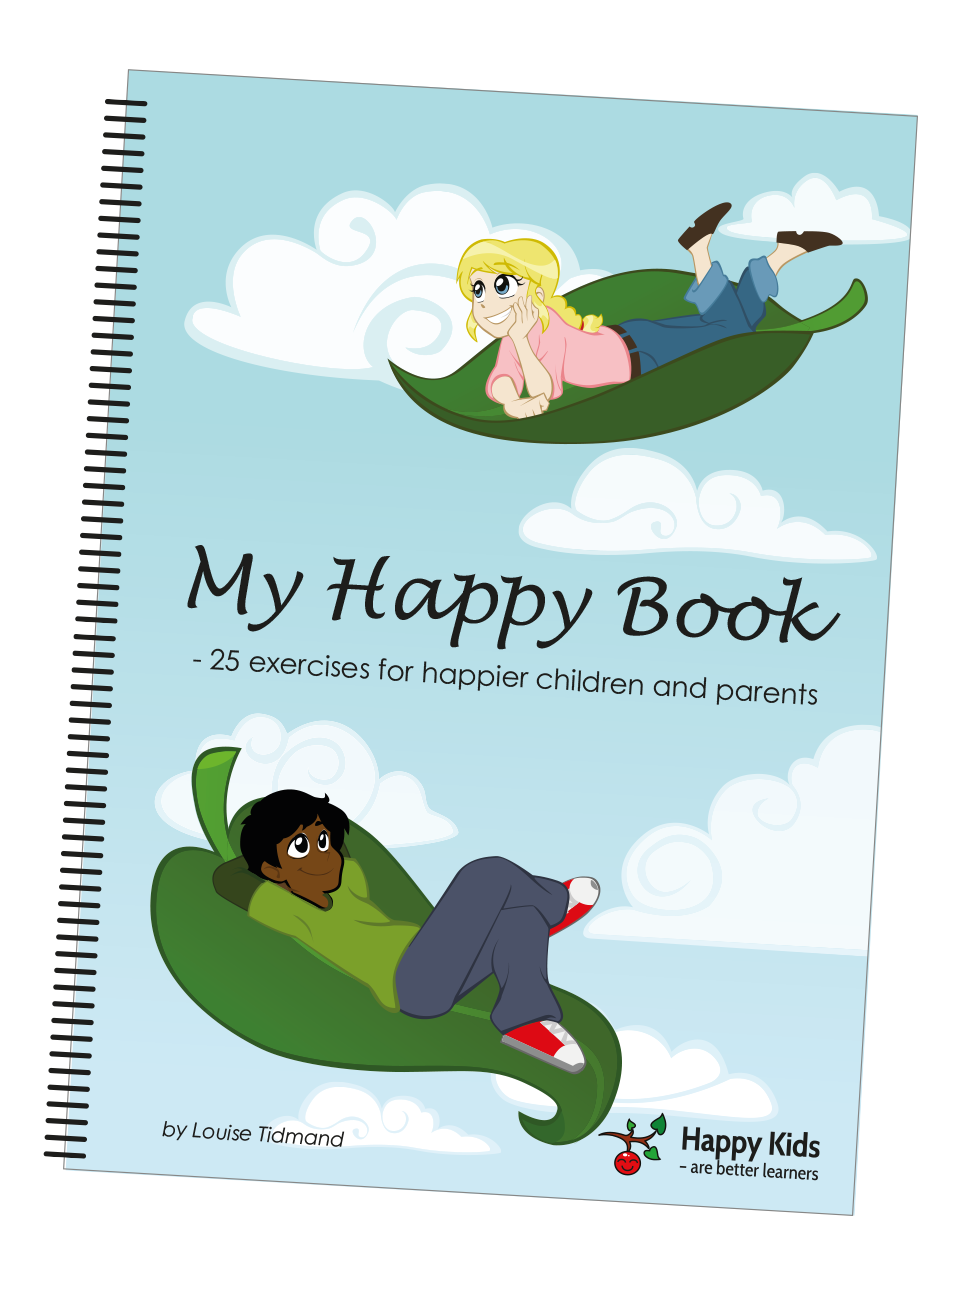 My Happy Book - 35 exercises for happier children and parents